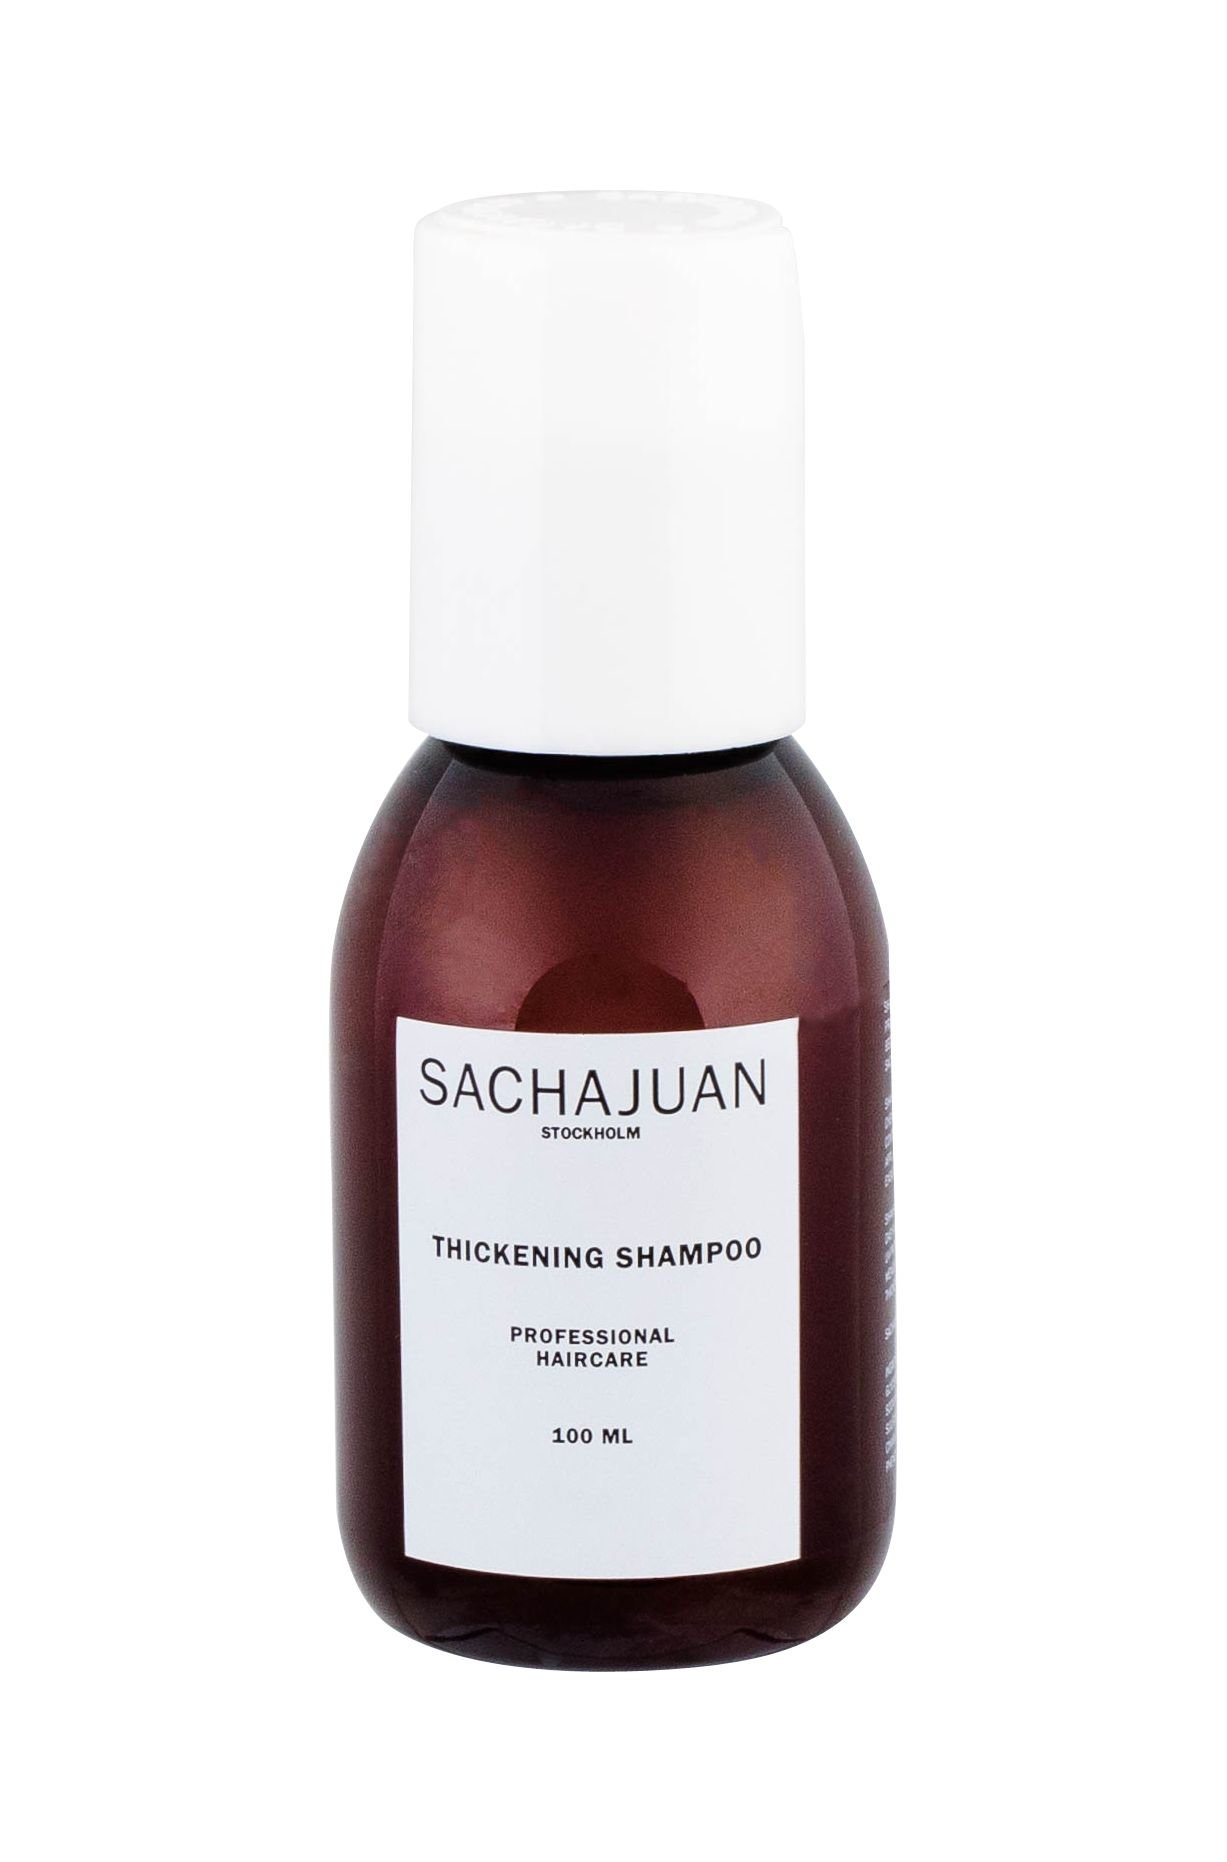 Sachajuan Cleanse & Care Shampoo 100ml